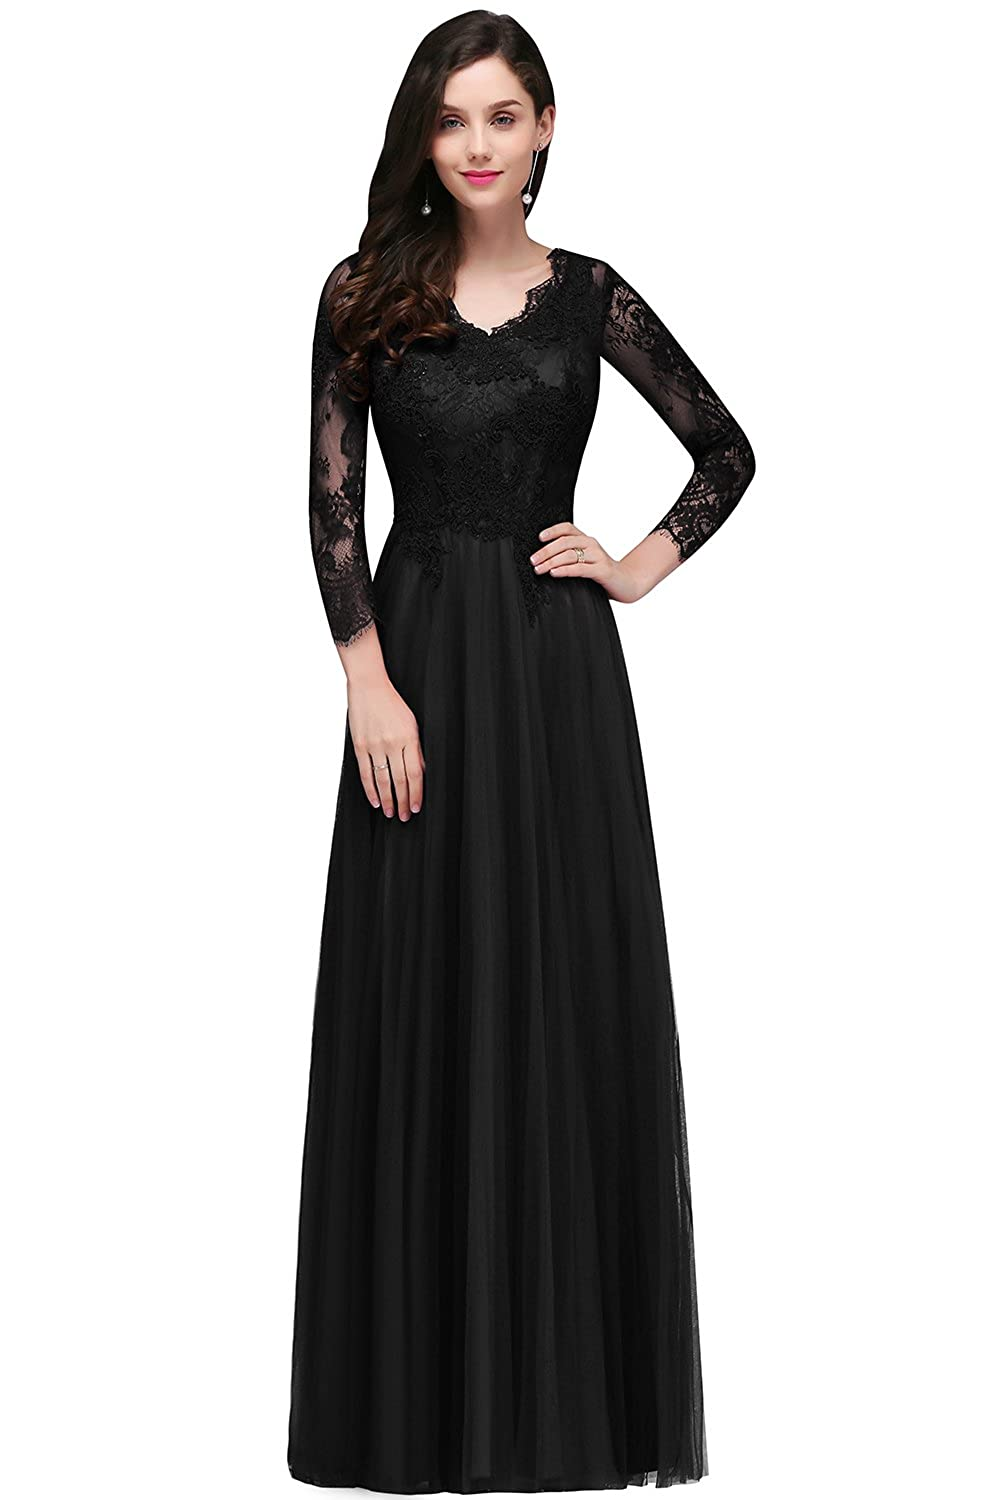 b020d21c208a0 Fabric: Lace Chiffon Imported Zipper closure. Start with this elegant yet  vintage long evening dress which can be used as gala, bridesmaid dress, ...